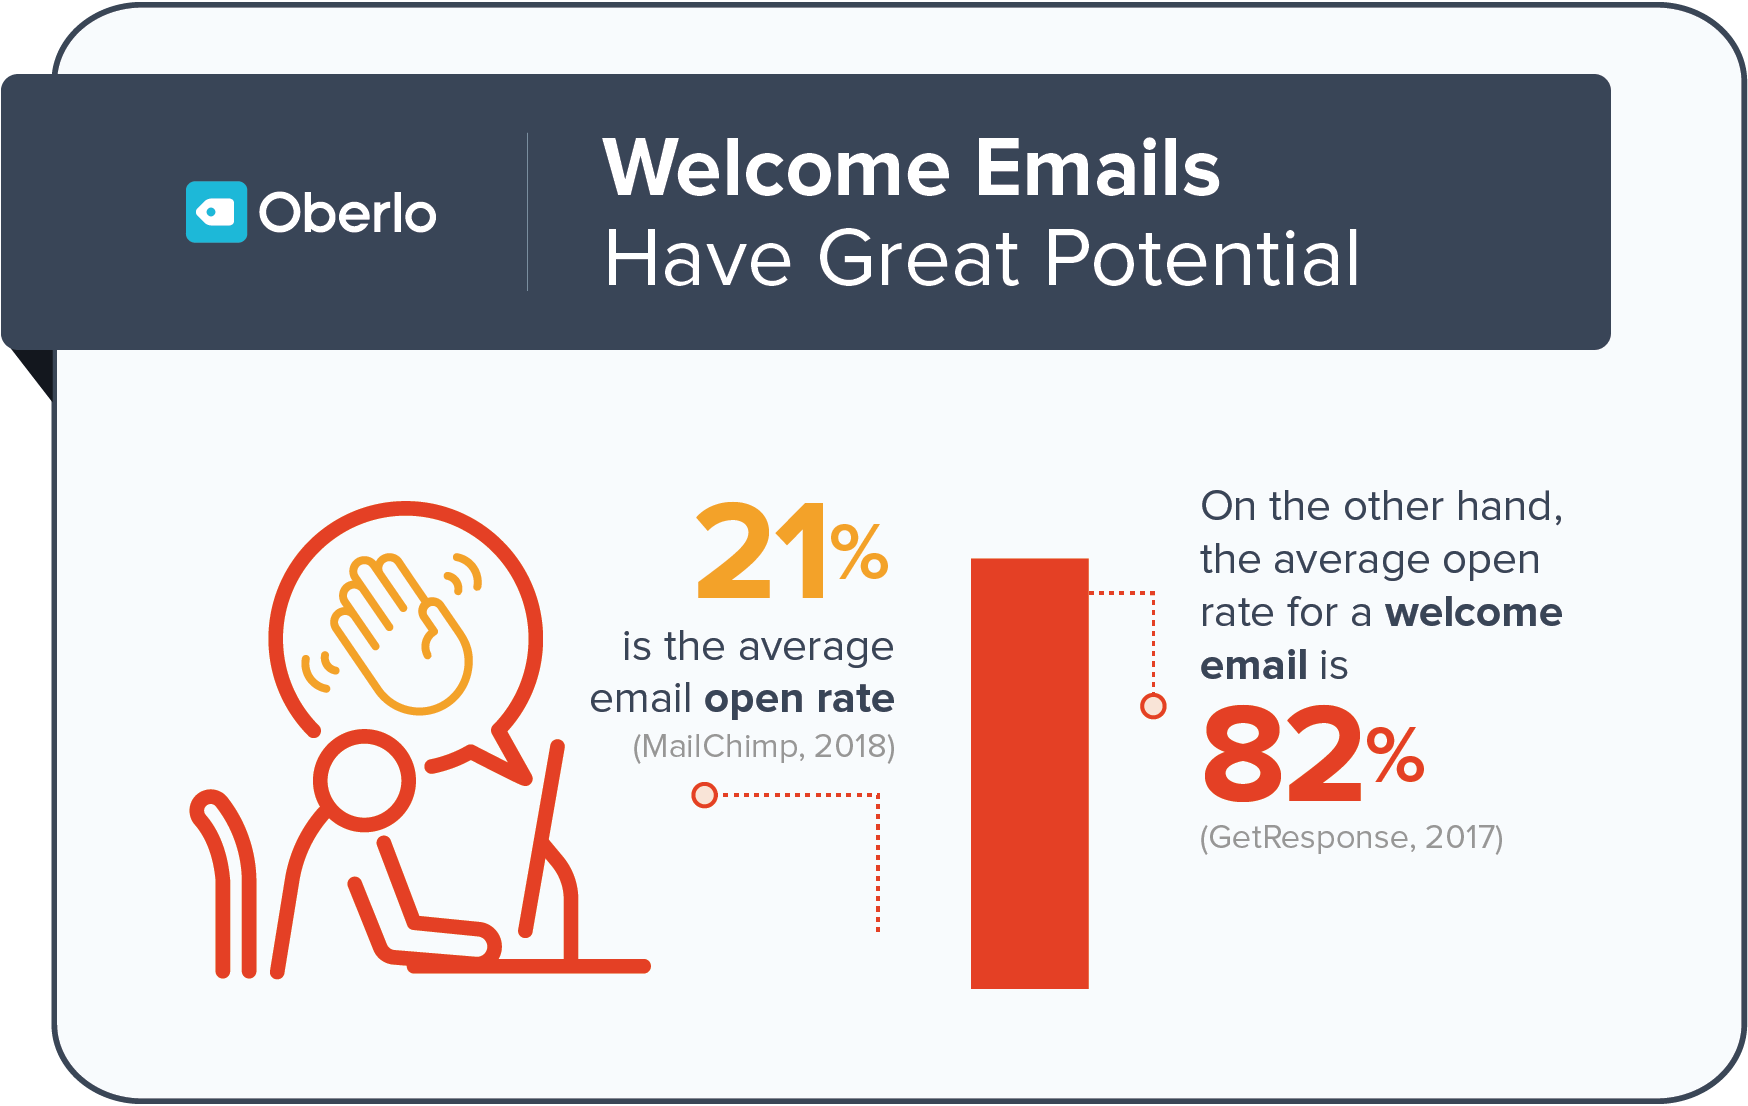 open rate of welcome emails